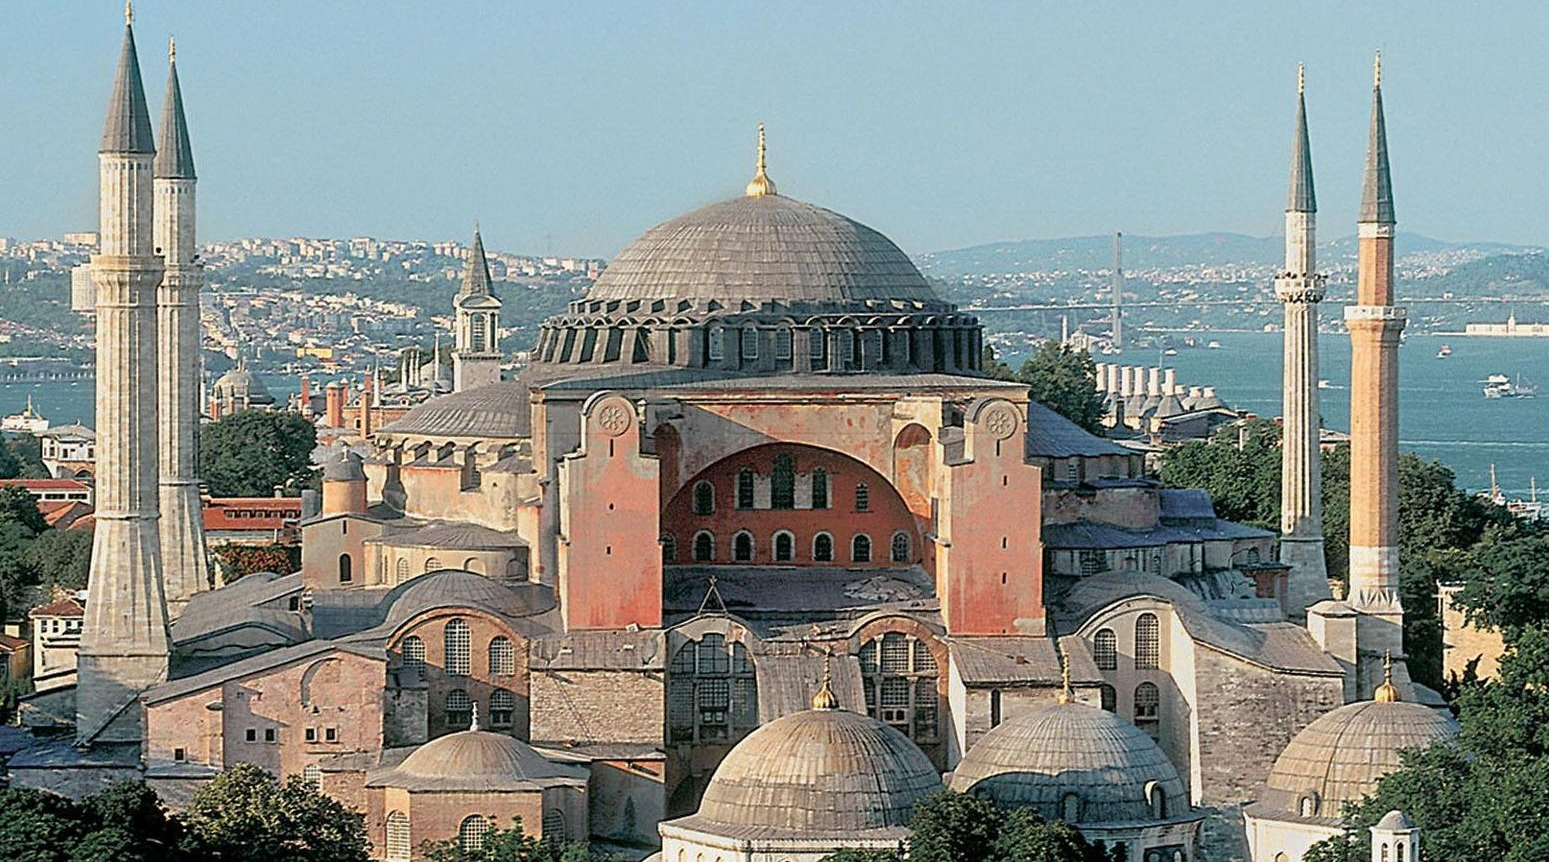 Agia Sophia, formerly the Cathedral of Constantinople, in Istanbul